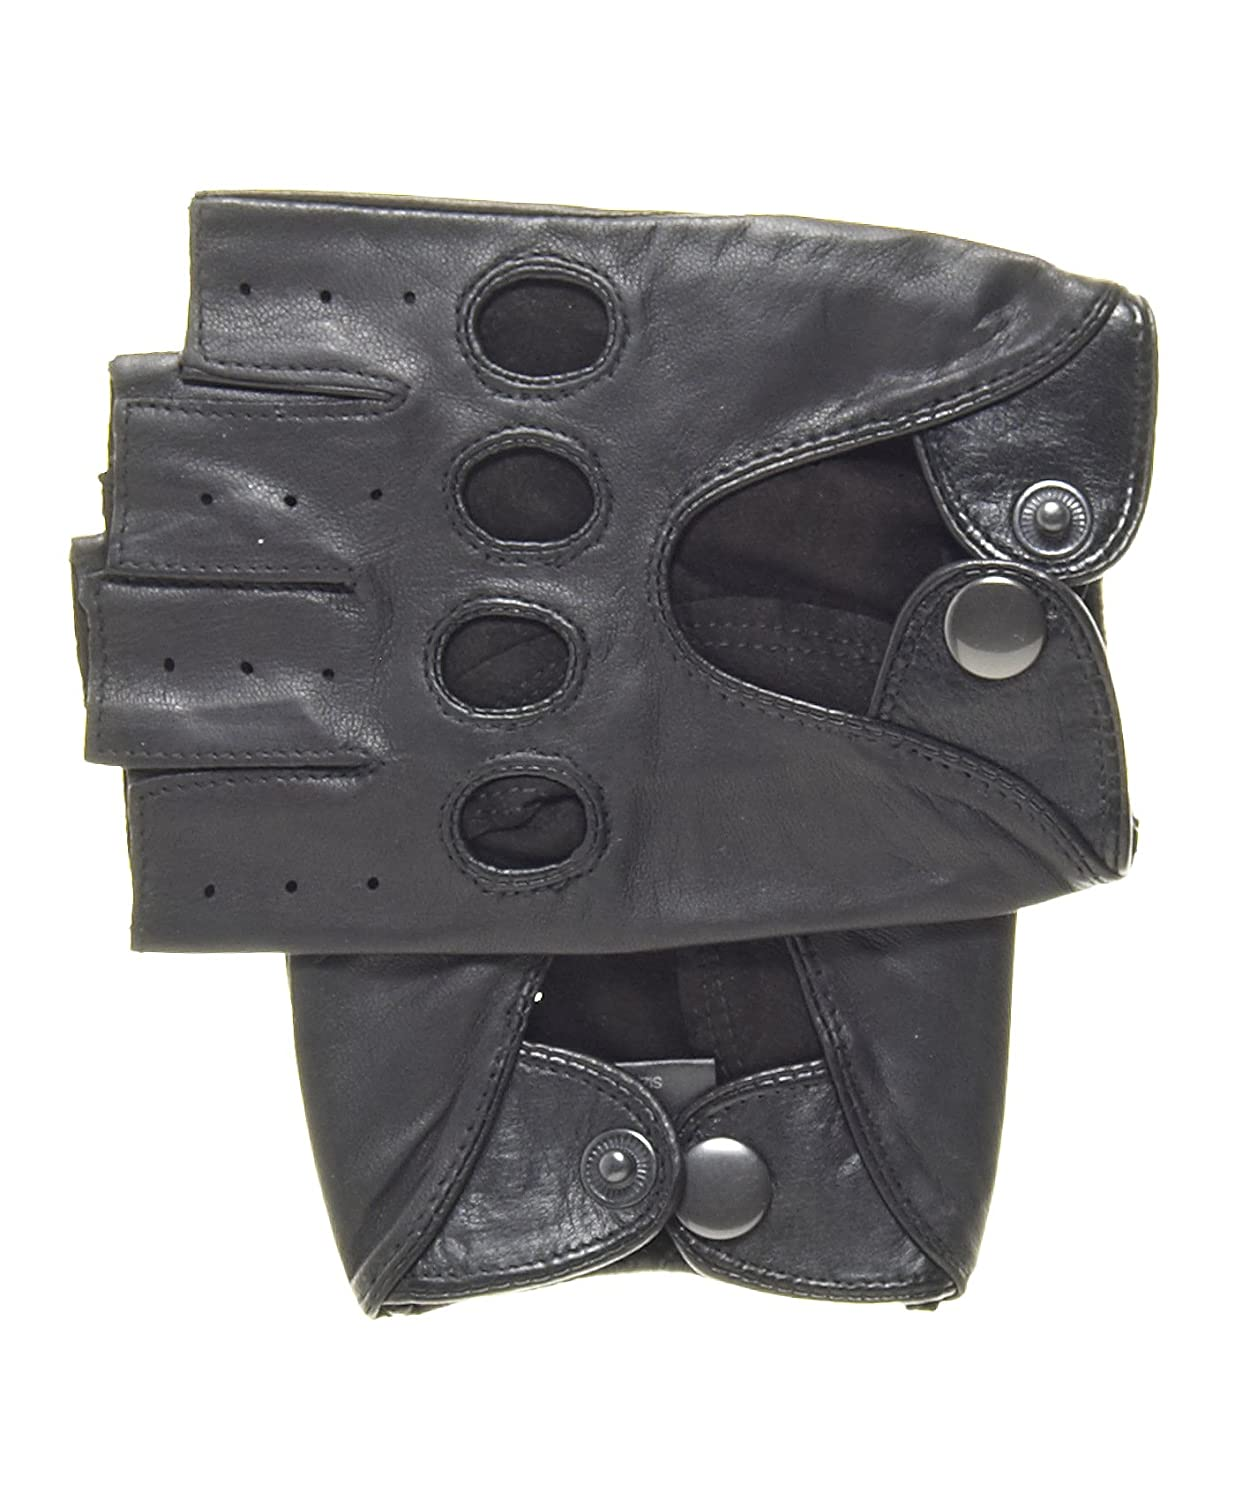 Driving gloves benefits - Amazon Com Pratt And Hart Men S Shorty Leather Driving Gloves Fingerless Size S Color Black Clothing